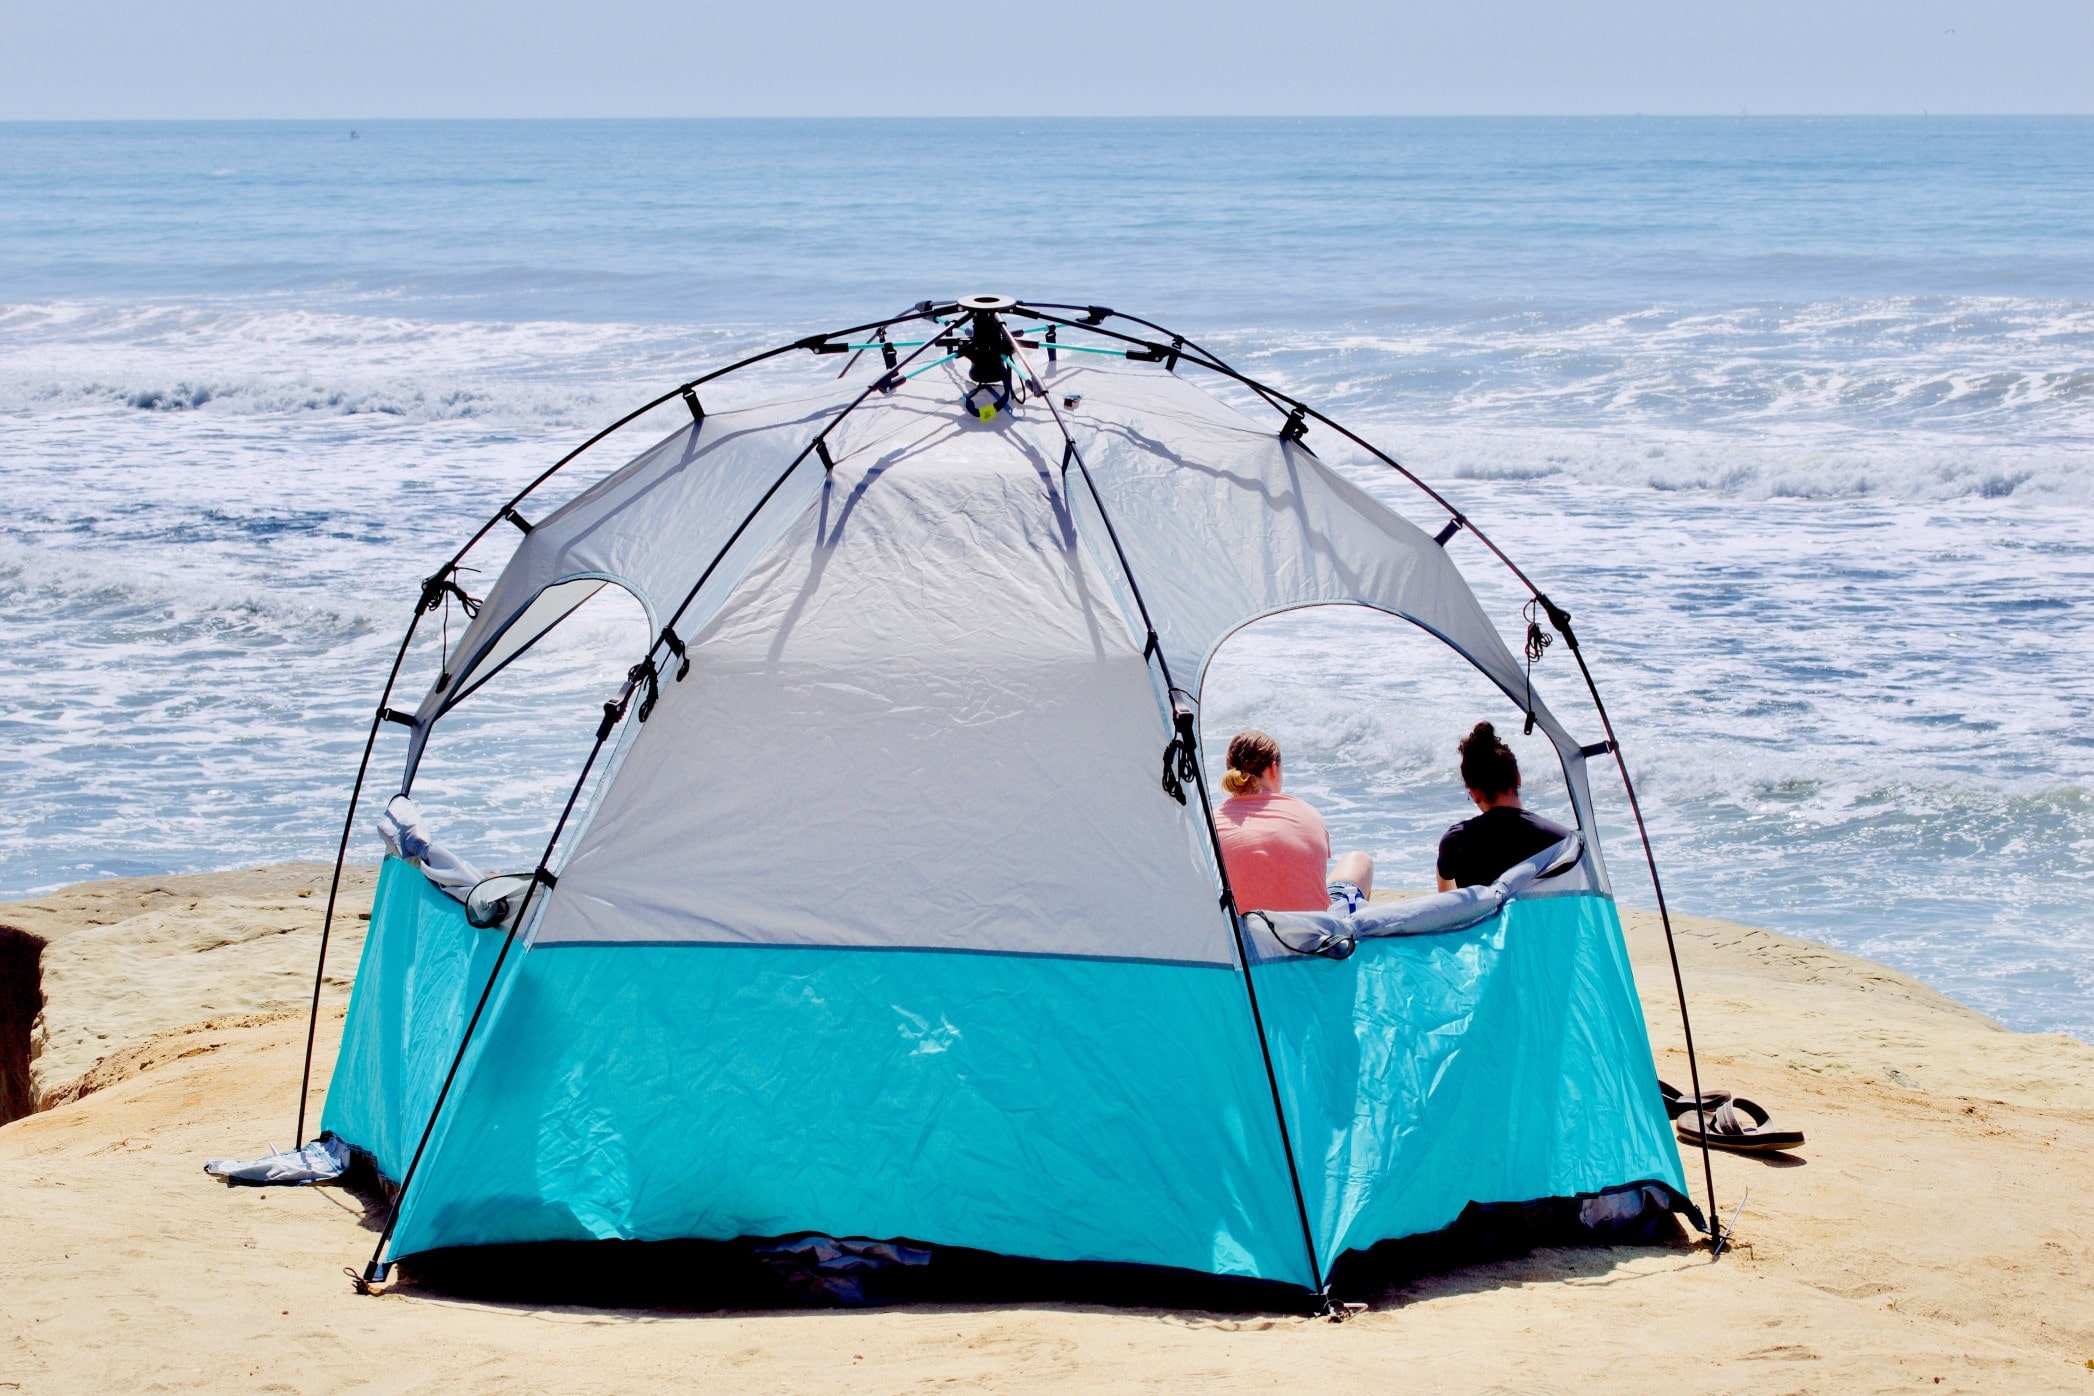 Camping in Beach Canopy Tent